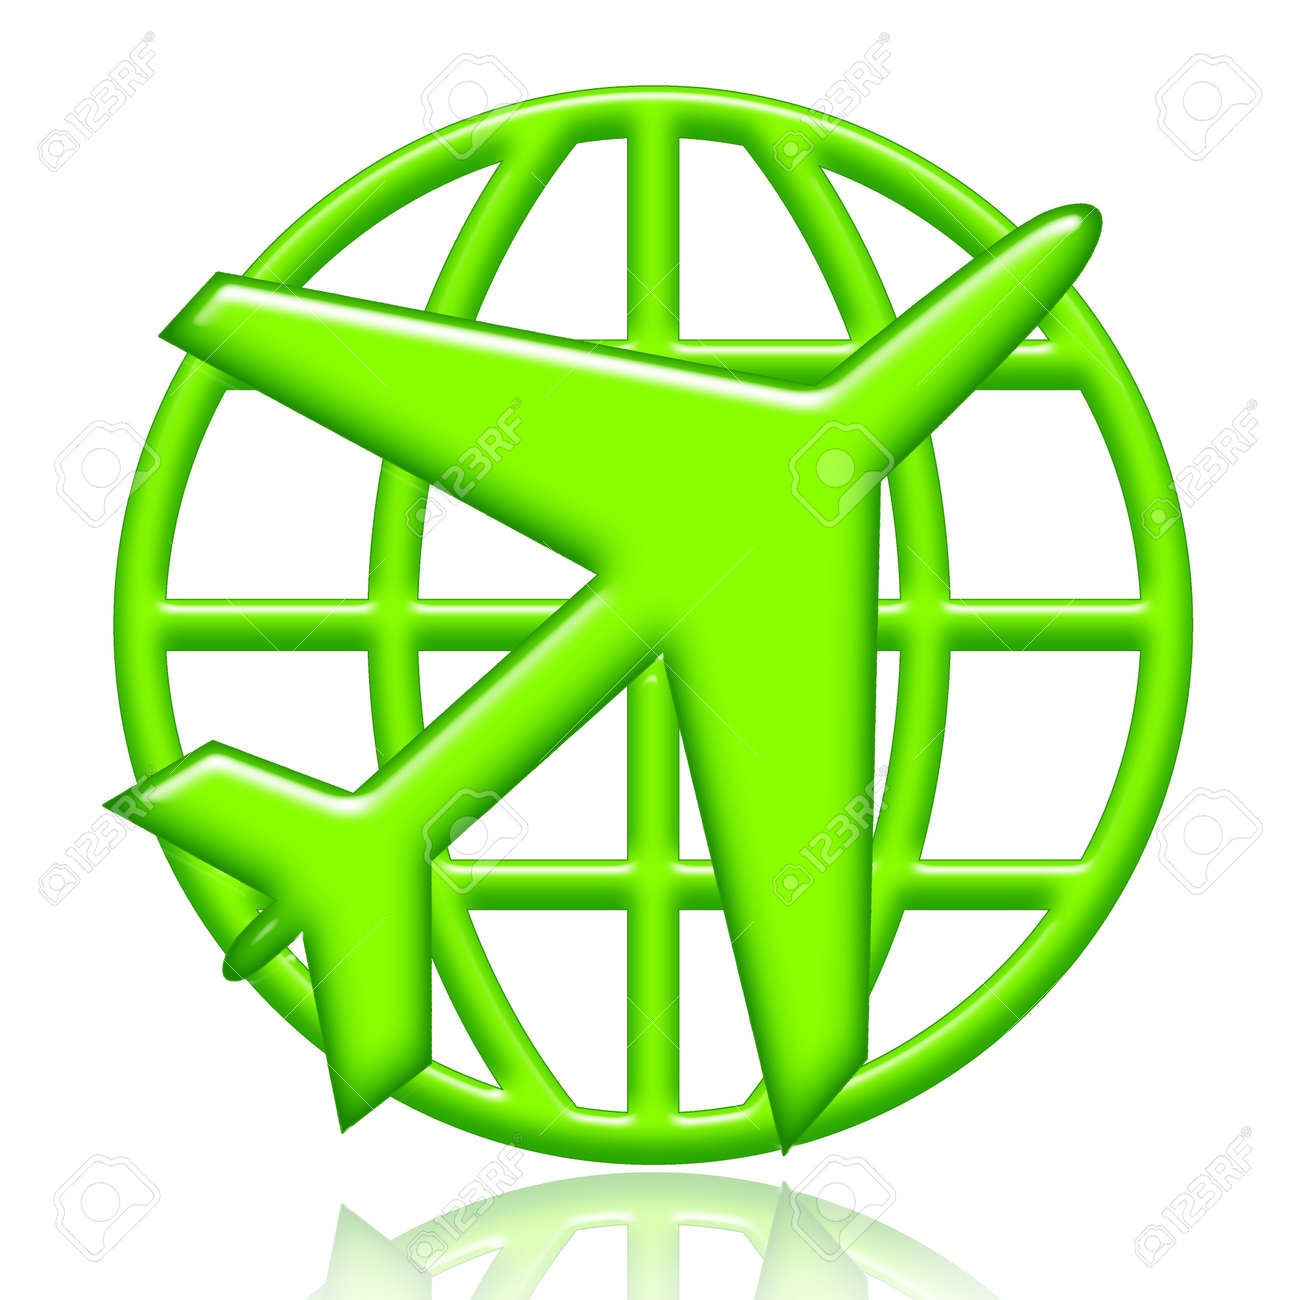 Airplane and globe green icon isolated over white background - 8733148